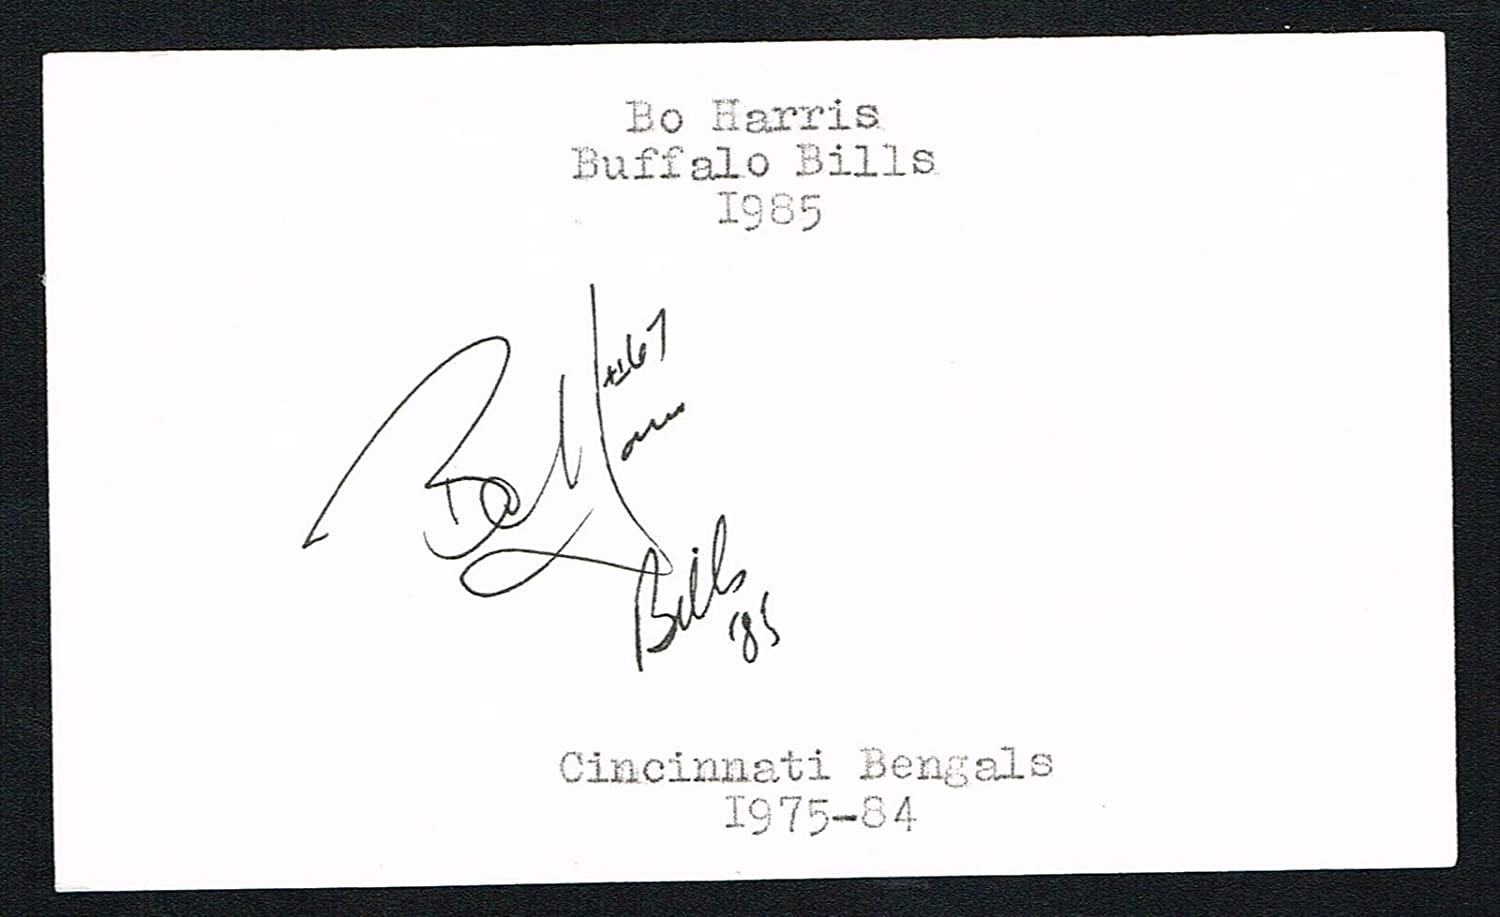 bo harris signed autograph auto 3x5 index card football lsu